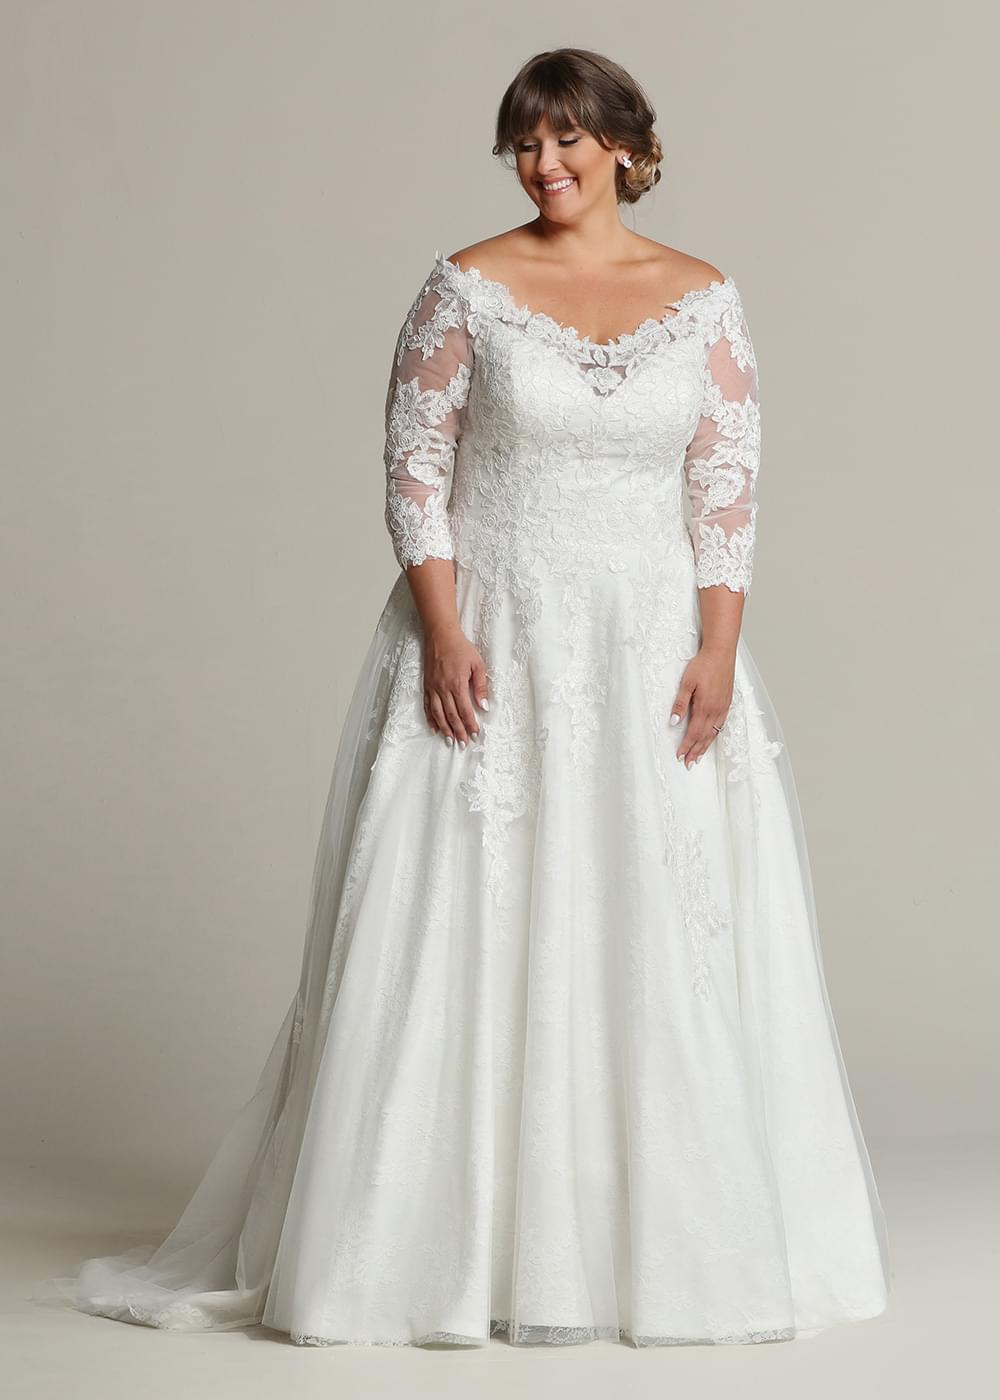 TH-Rose TH Wedding Dresses By Ashdon